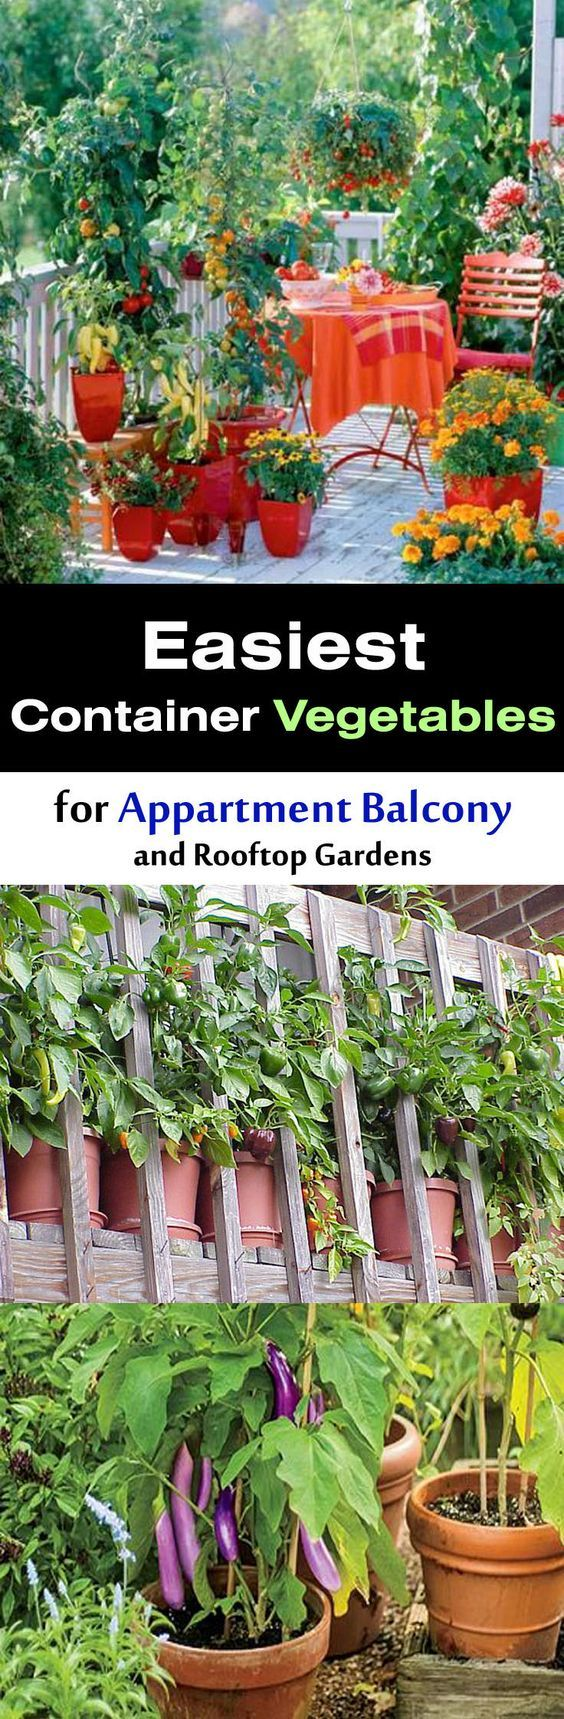 Container vegetable gardening for your balcony or rooftop. | Balcony Garden Web